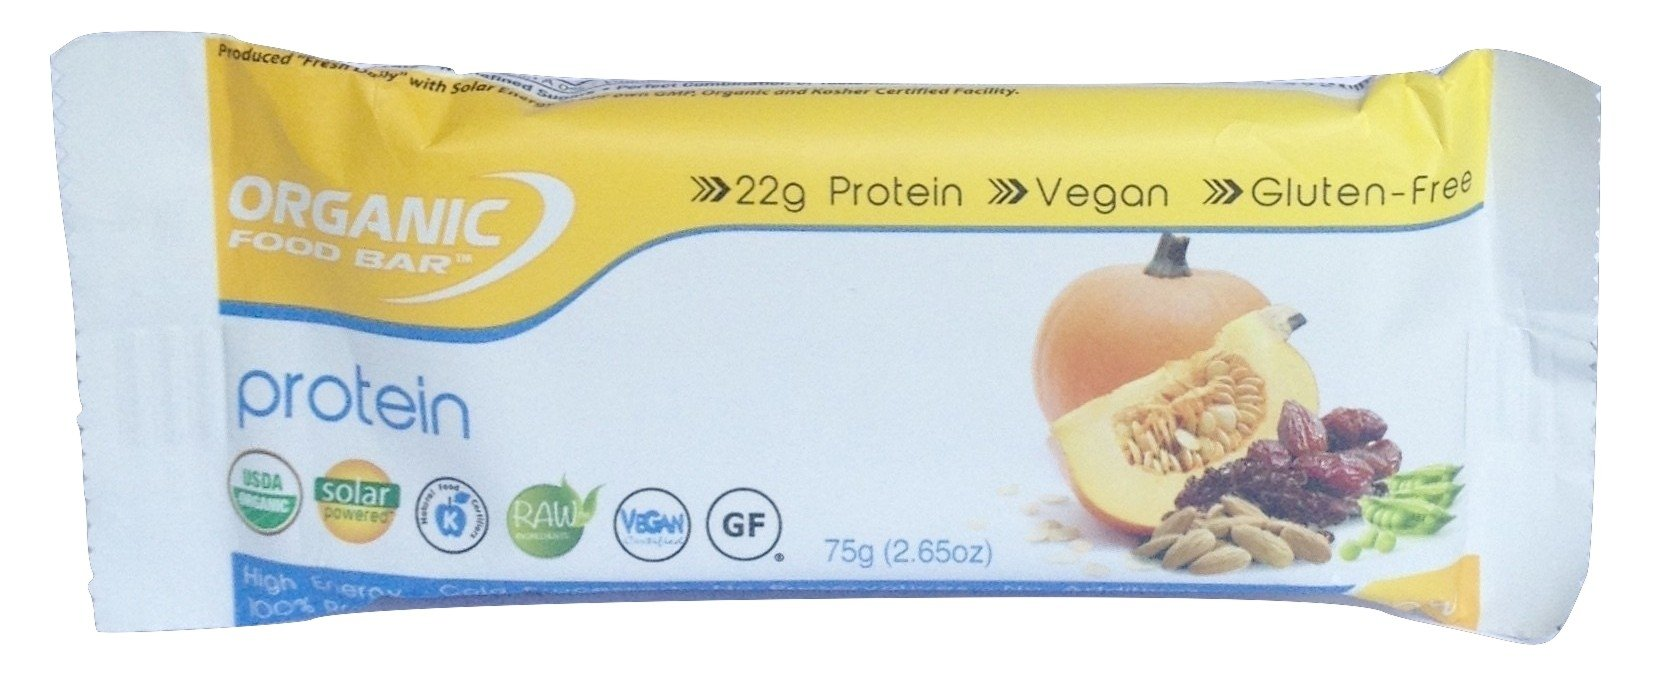 Organic Food Bar Raw Protein Bar, 75g bars (Pack of 12 bars), 22g Protein per Bar